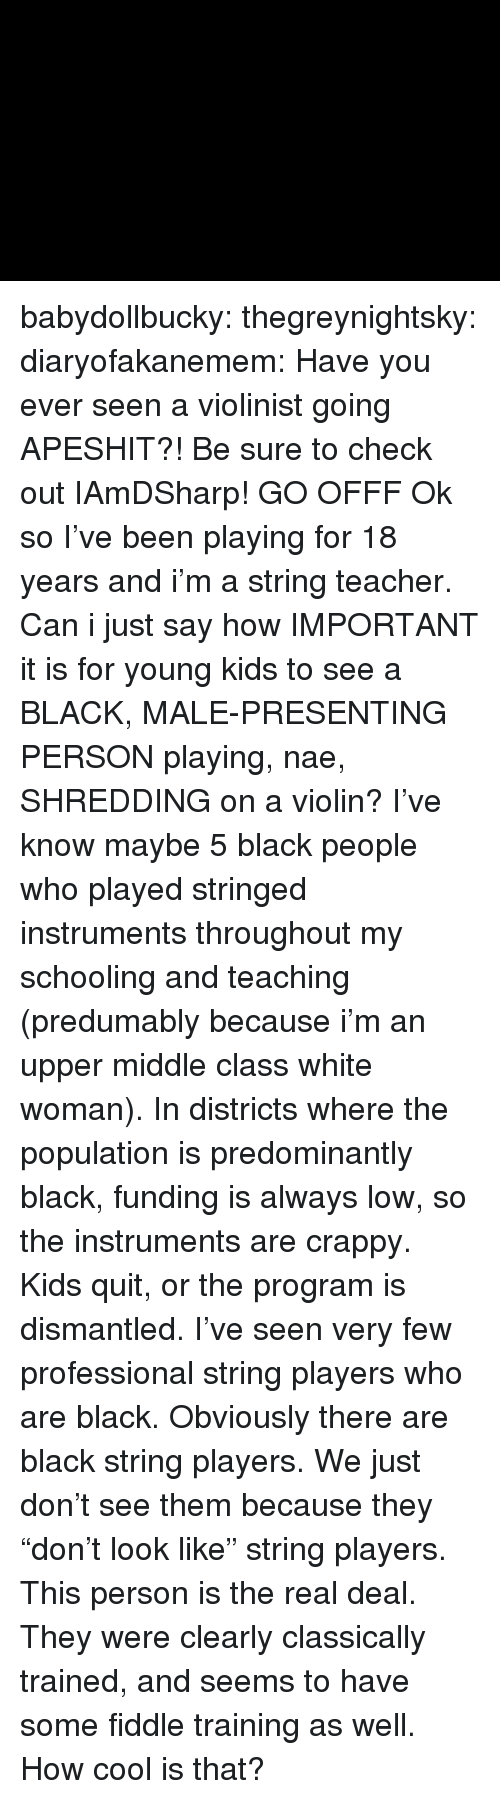 "Instagram, Teacher, and Tumblr: babydollbucky:  thegreynightsky:  diaryofakanemem:   Have you ever seen a violinist going APESHIT?! Be sure to check out IAmDSharp!   GO OFFF  Ok so I've been playing for 18 years and i'm a string teacher. Can i just say how IMPORTANT it is for young kids to see a BLACK, MALE-PRESENTING PERSON playing, nae, SHREDDING on a violin? I've know maybe 5 black people who played stringed instruments throughout my schooling and teaching (predumably because i'm an upper middle class white woman). In districts where the population is predominantly black, funding is always low, so the instruments are crappy. Kids quit, or the program is dismantled. I've seen very few professional string players who are black.  Obviously there are black string players. We just don't see them because they ""don't look like"" string players.   This person is the real deal. They were clearly classically trained, and seems to have some fiddle training as well. How cool is that?"